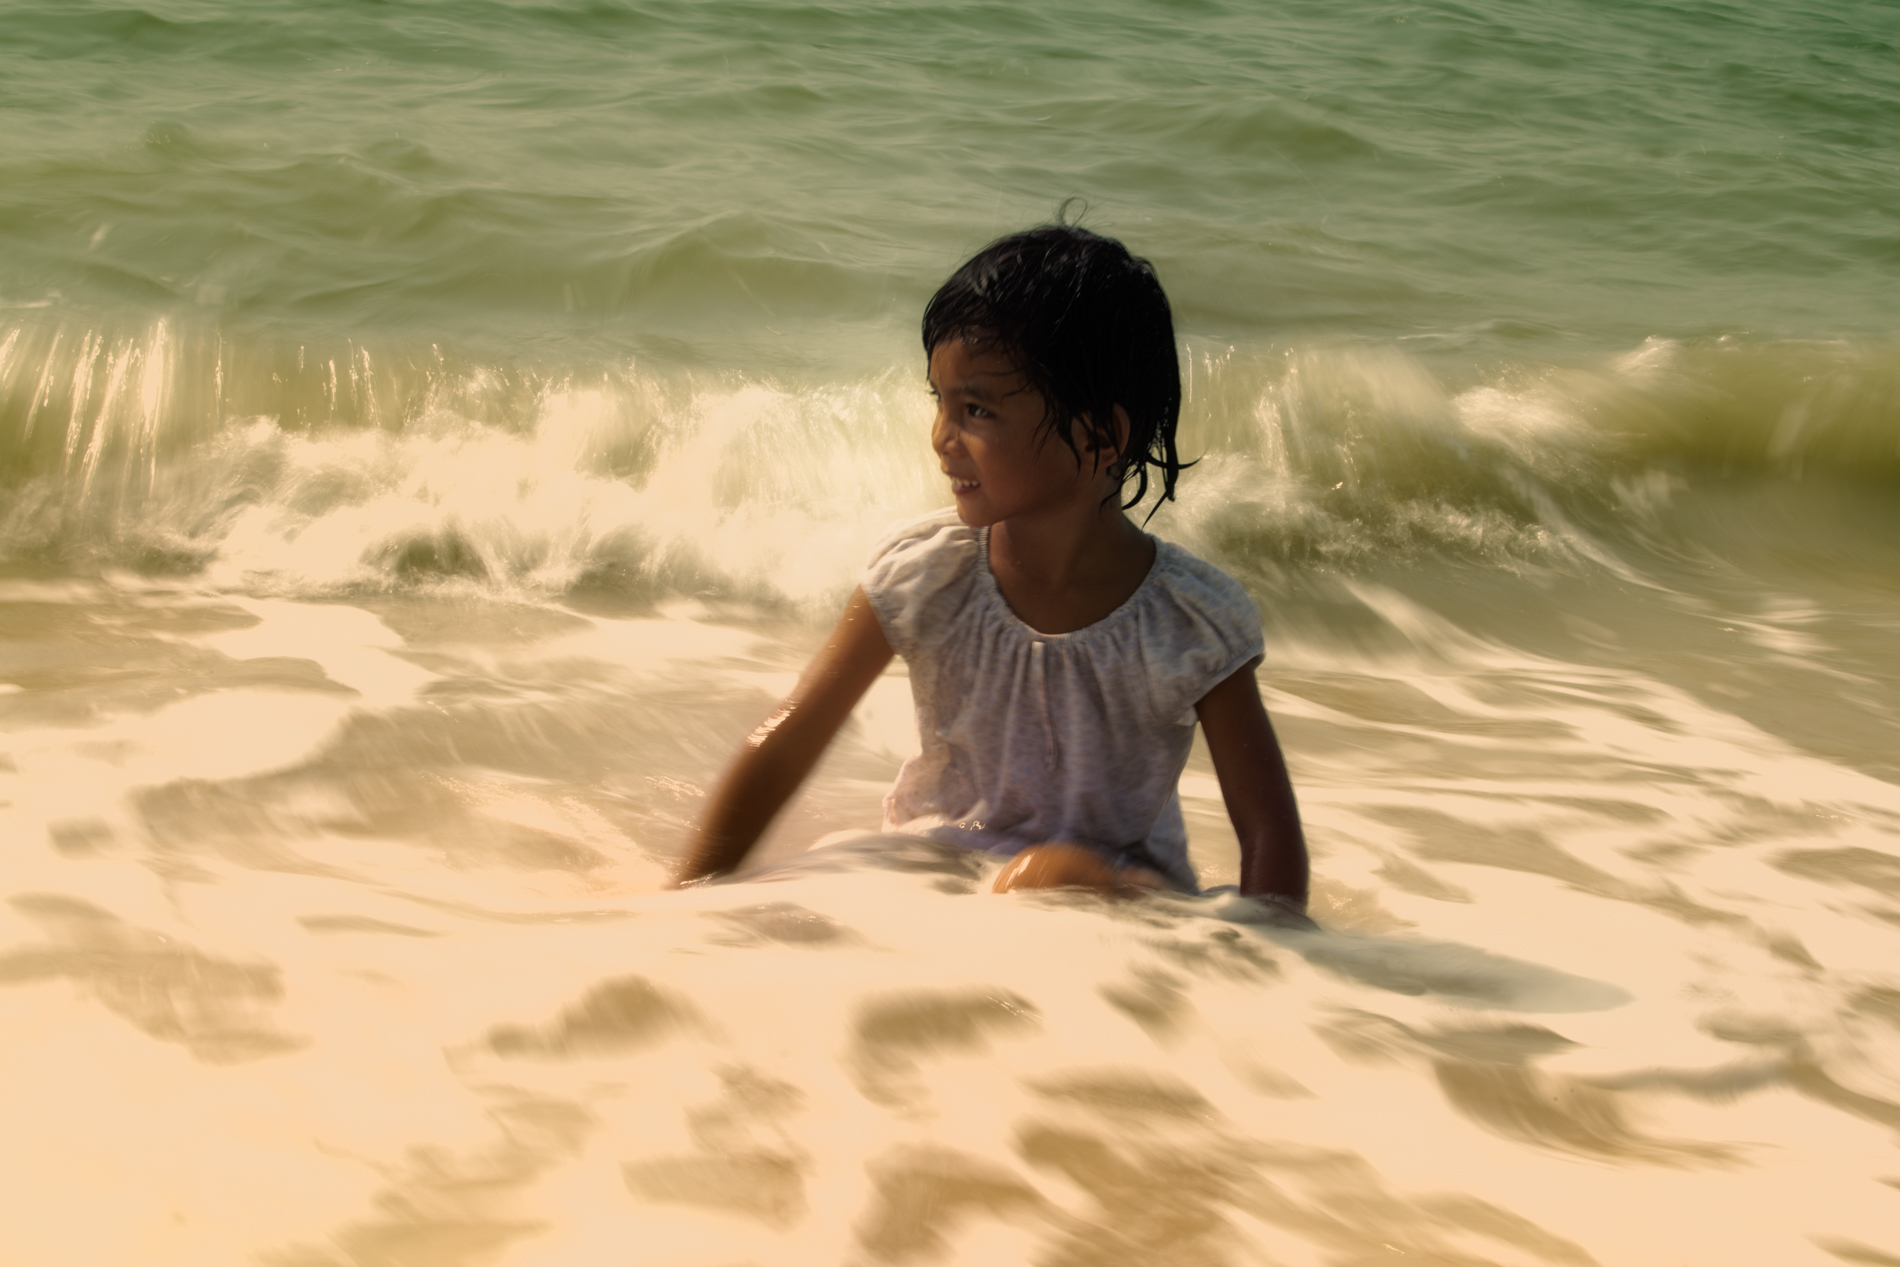 Malaysian child in the waters of Penang